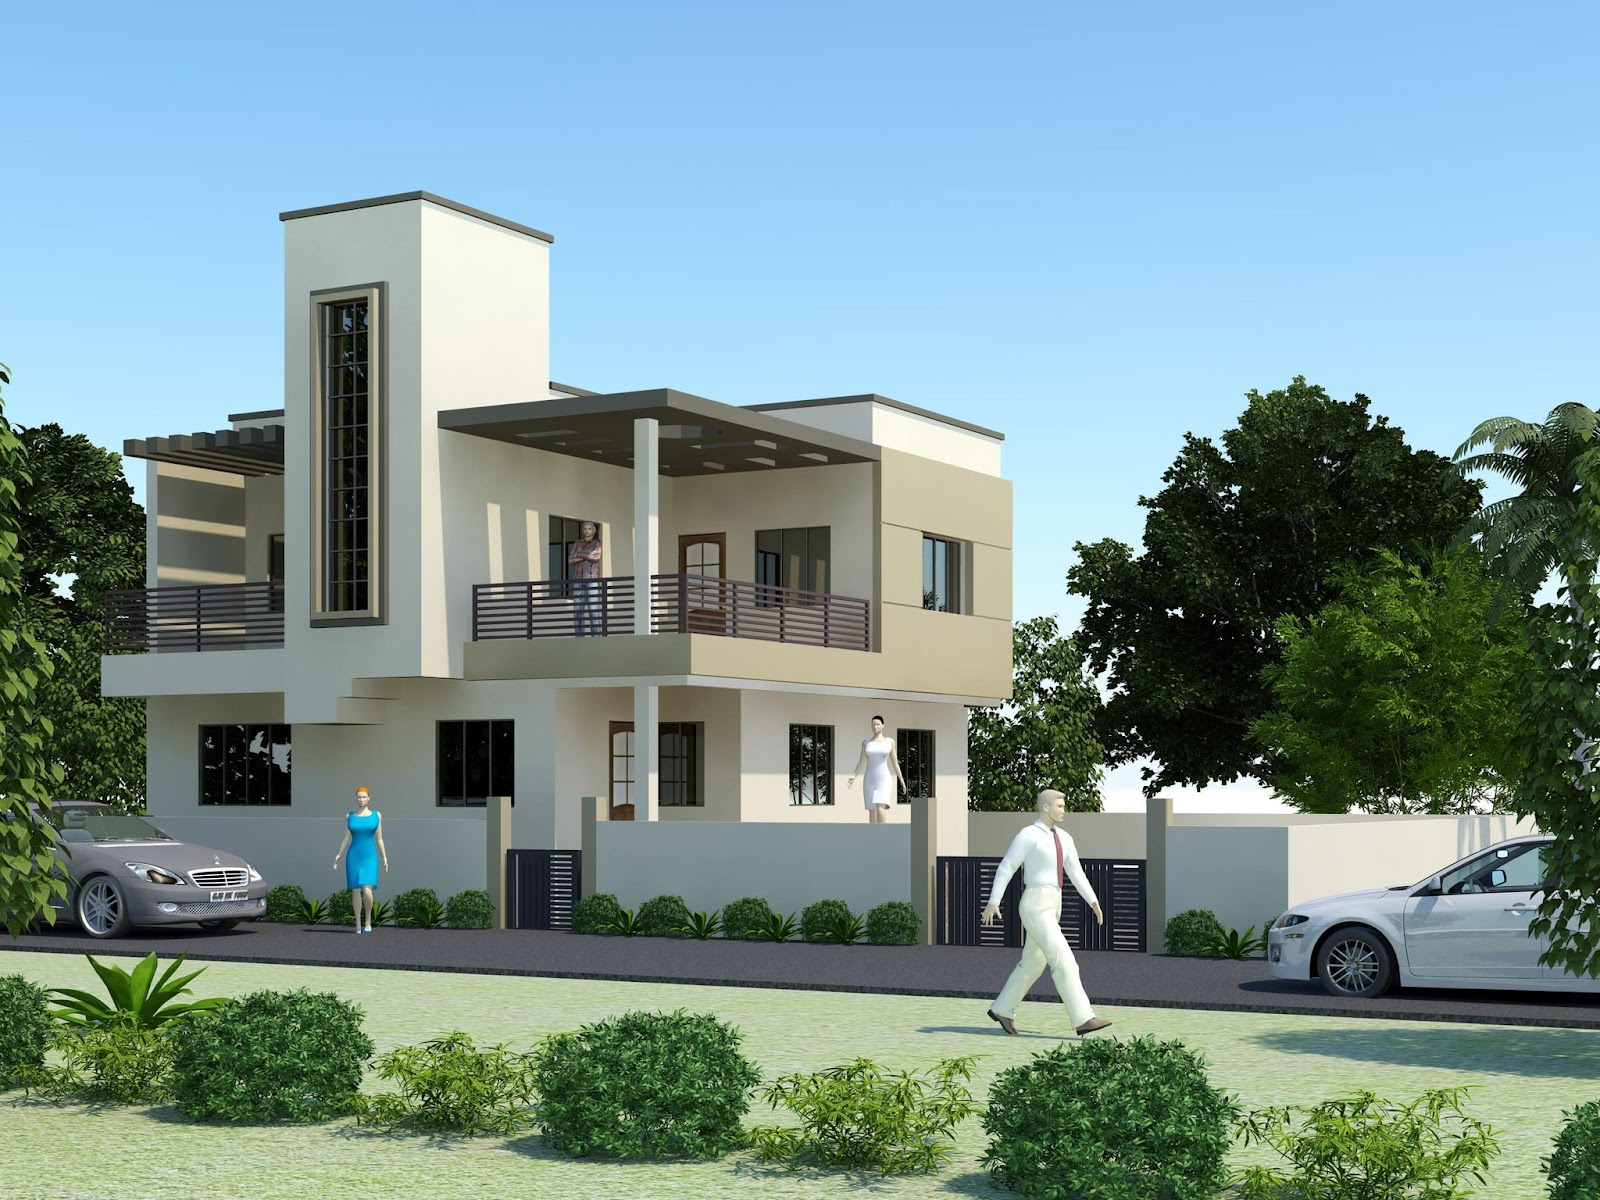 New home designs latest modern homes exterior designs for Home designs 12m frontage